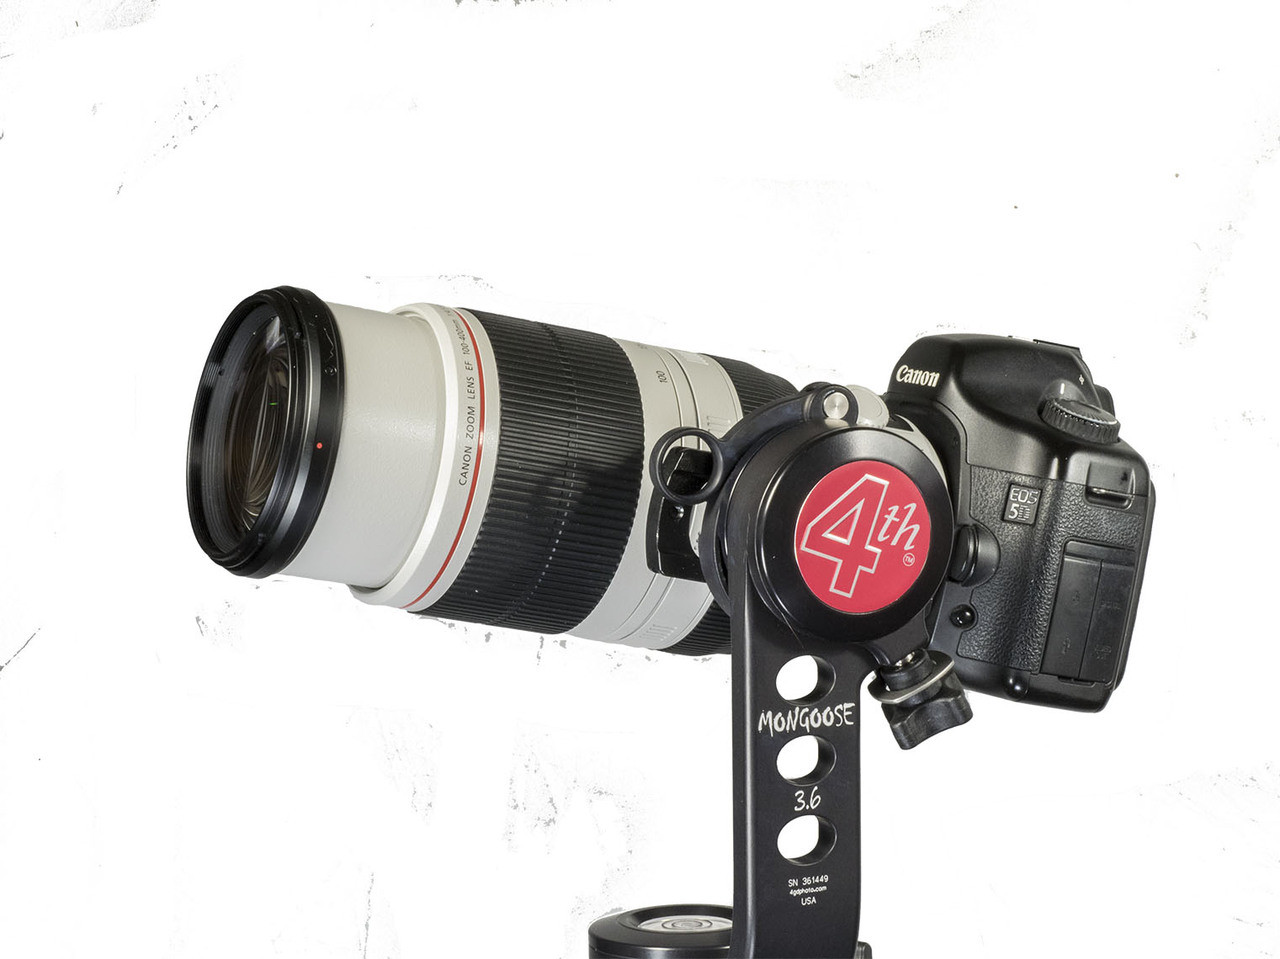 Well balanced with the Mongoose or other tripod heads.